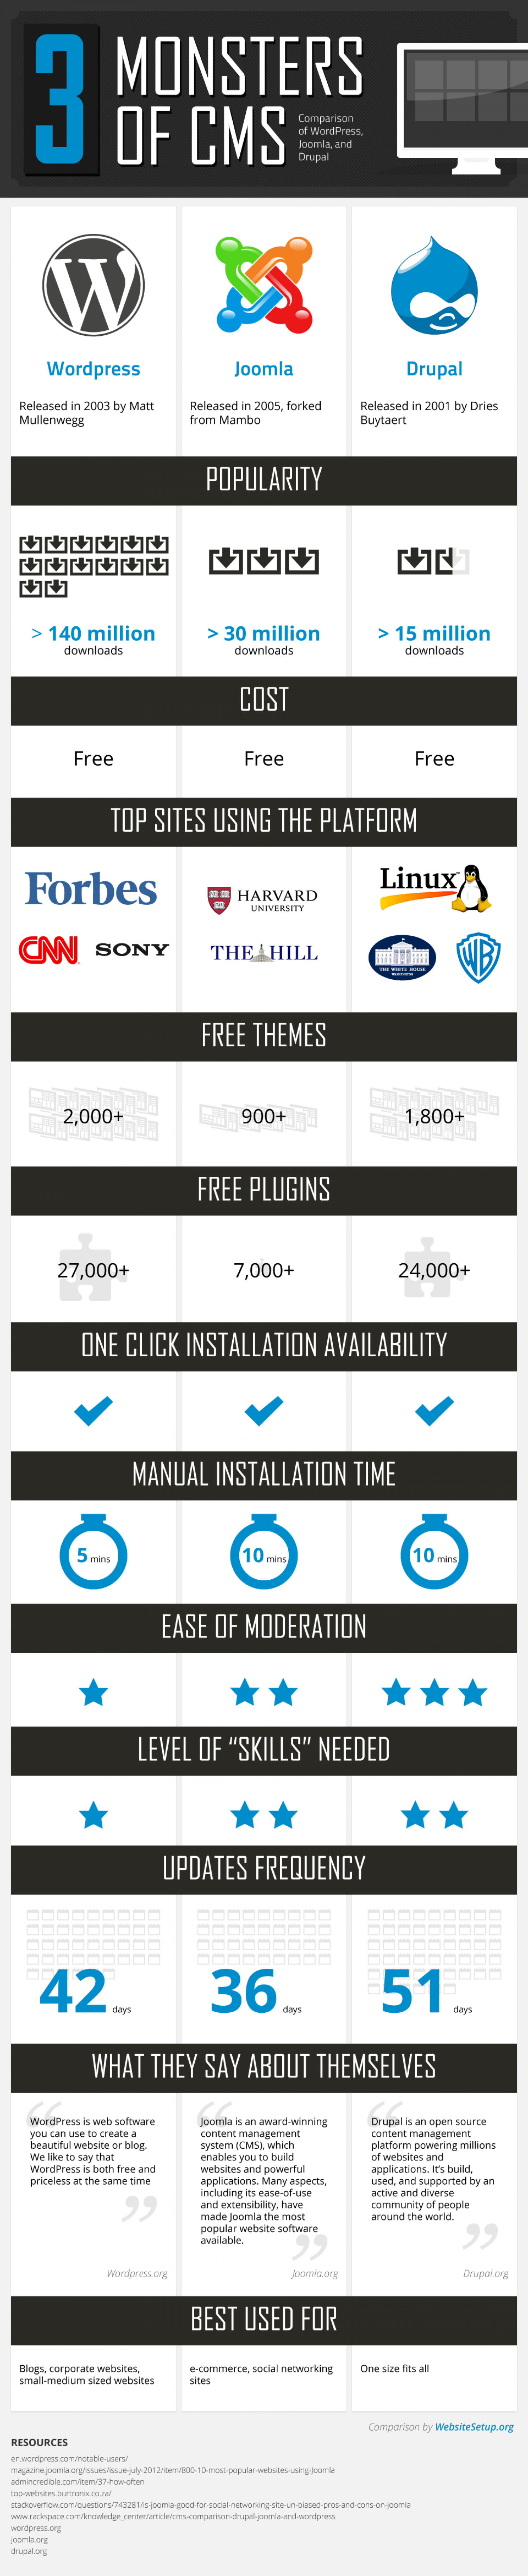 3 Monster of CMS Infographic